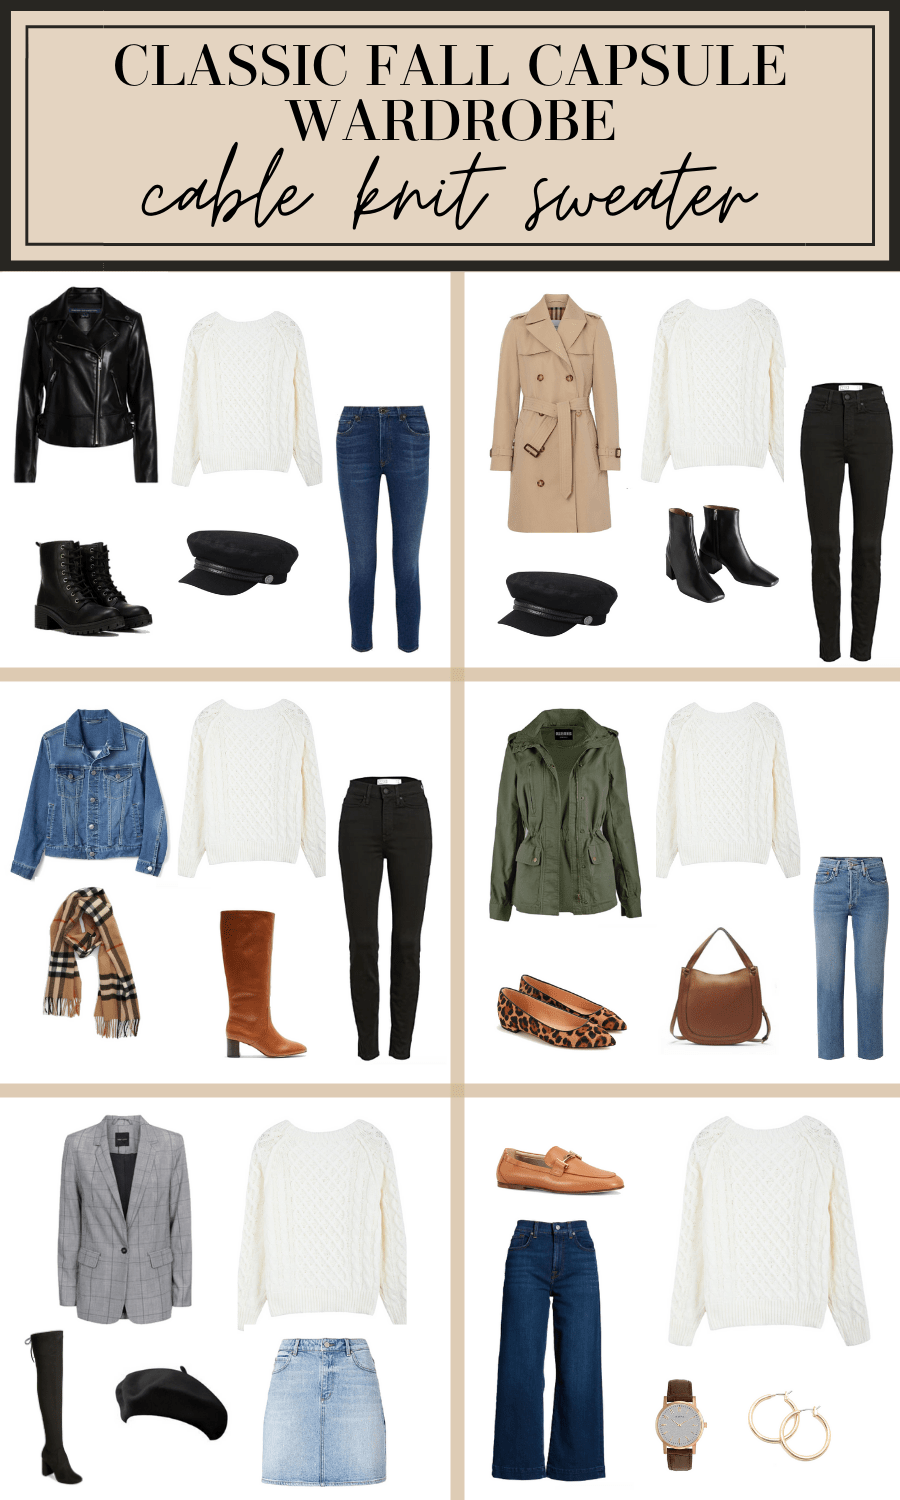 how to wear a cable knit sweater fall capsule wardrobe